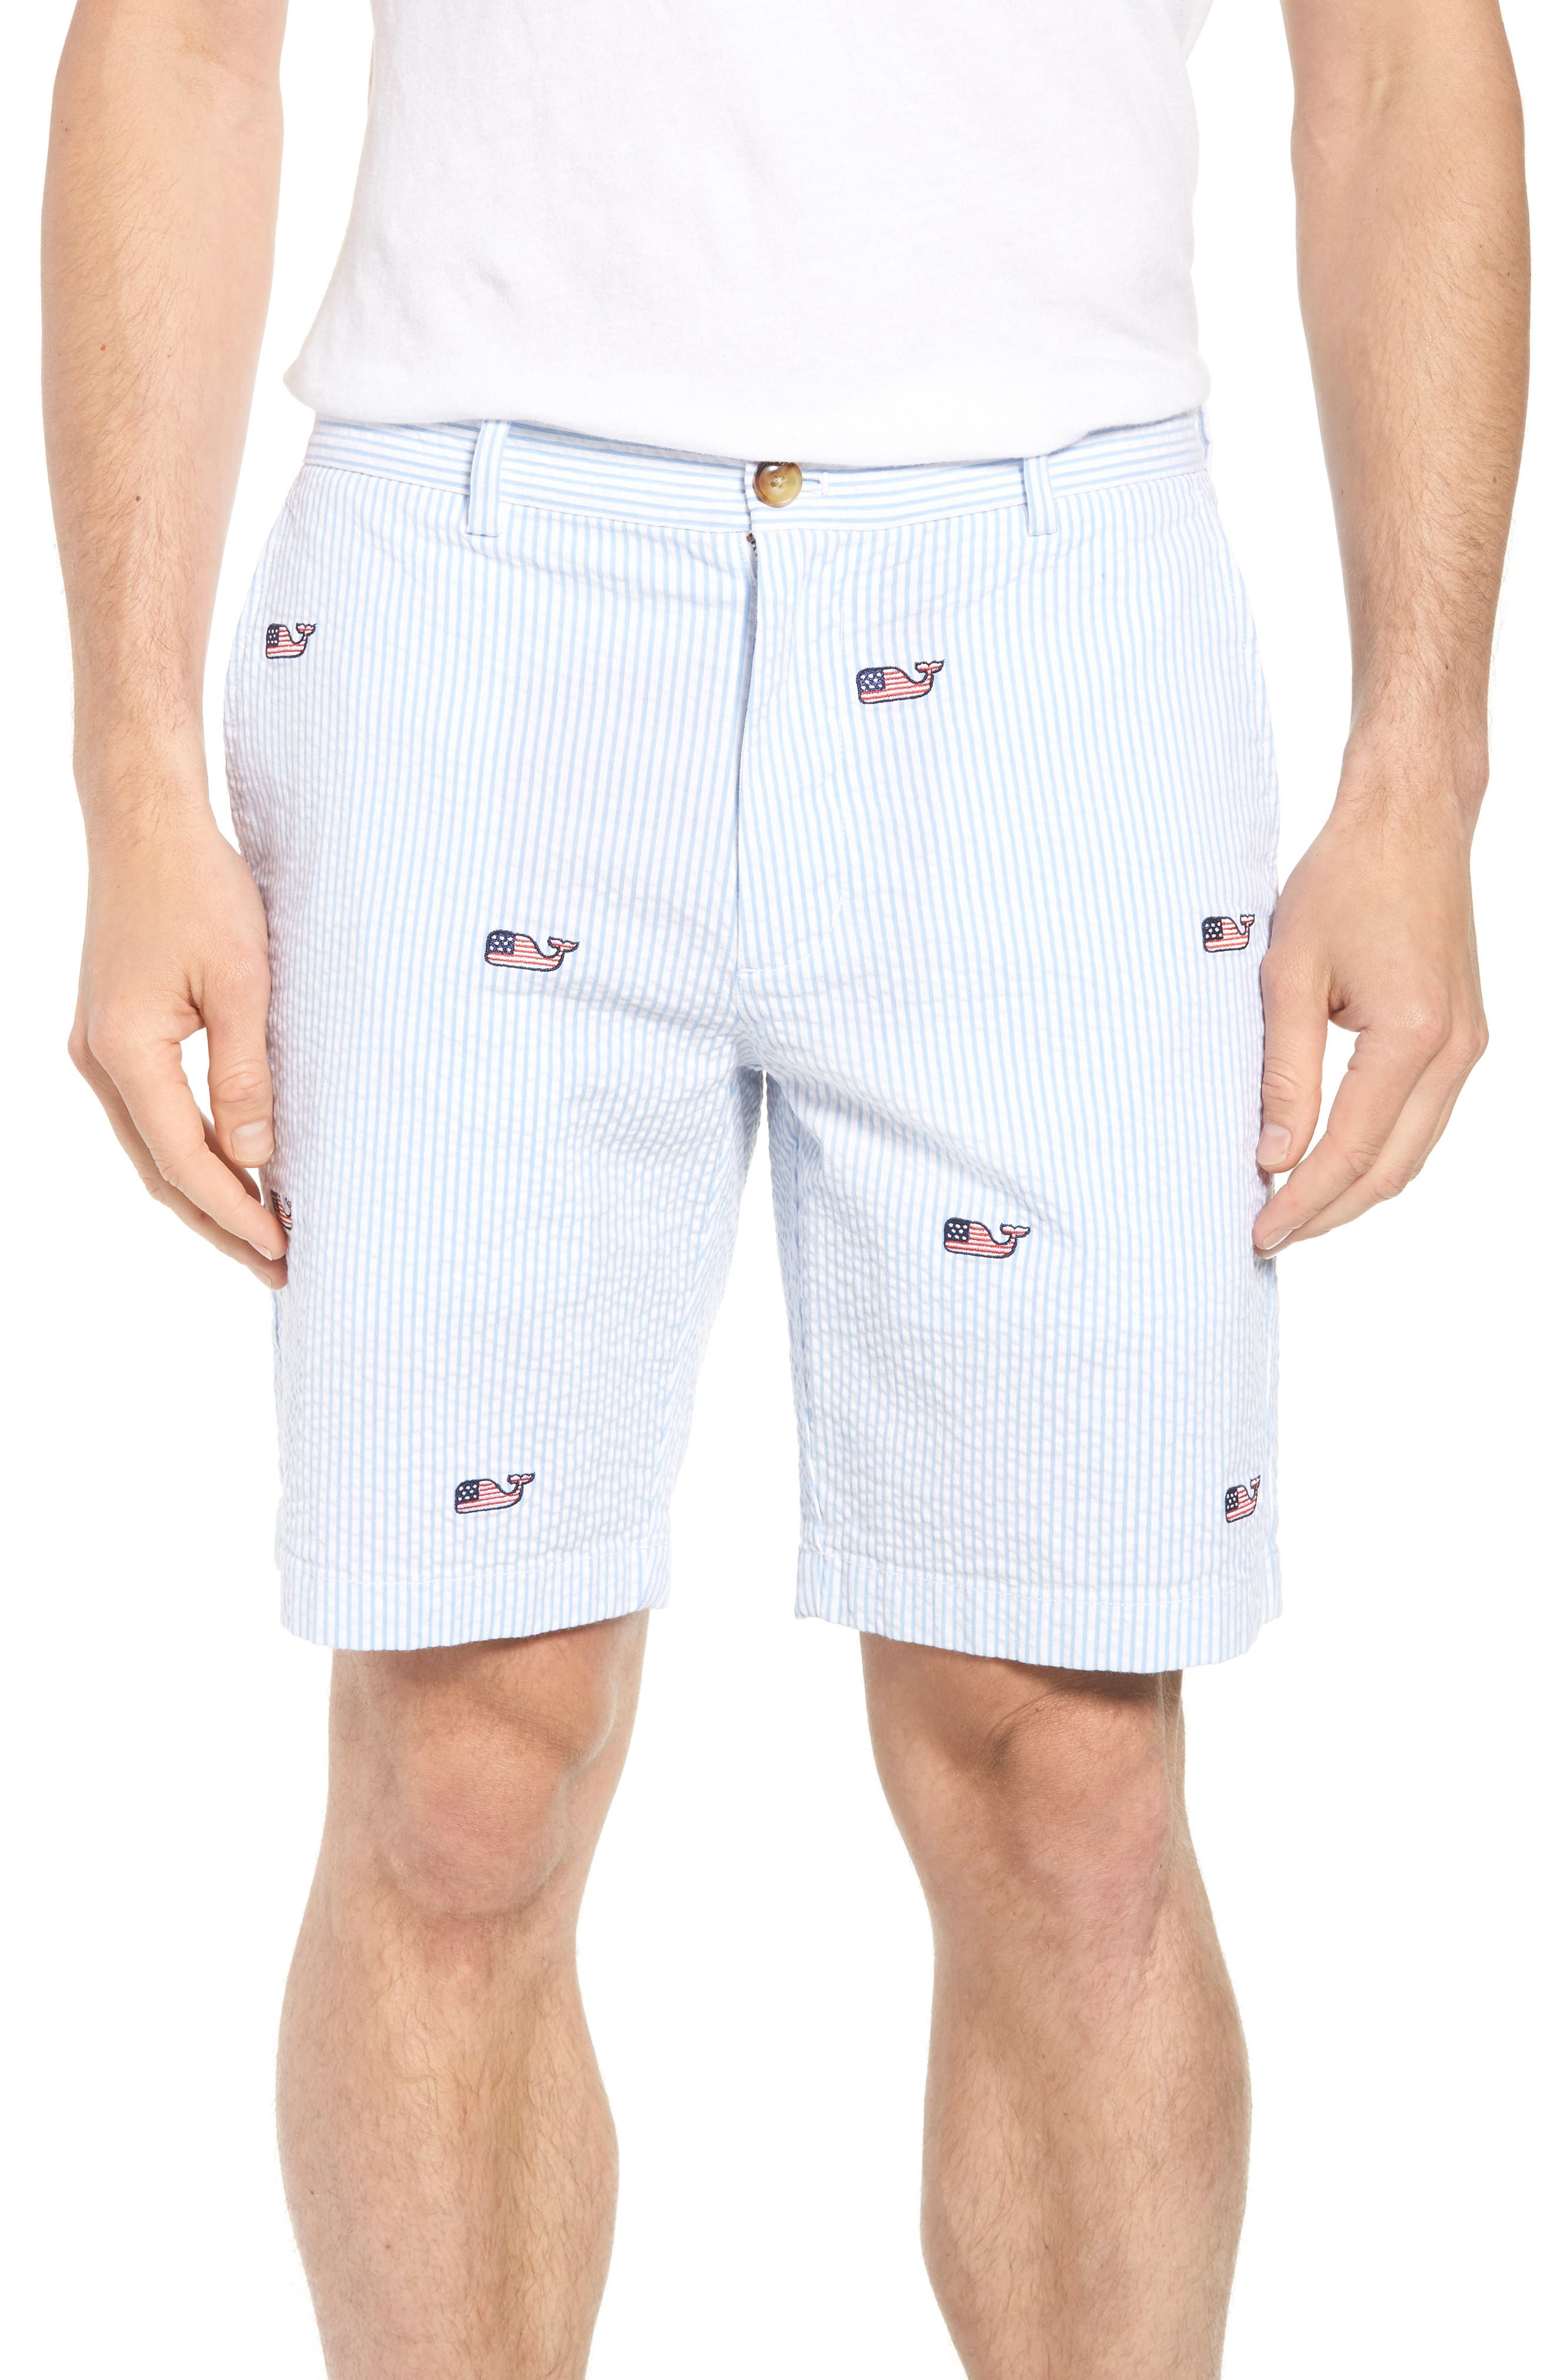 Seersucker Whale Shorts,                             Main thumbnail 1, color,                             Ocean Breeze